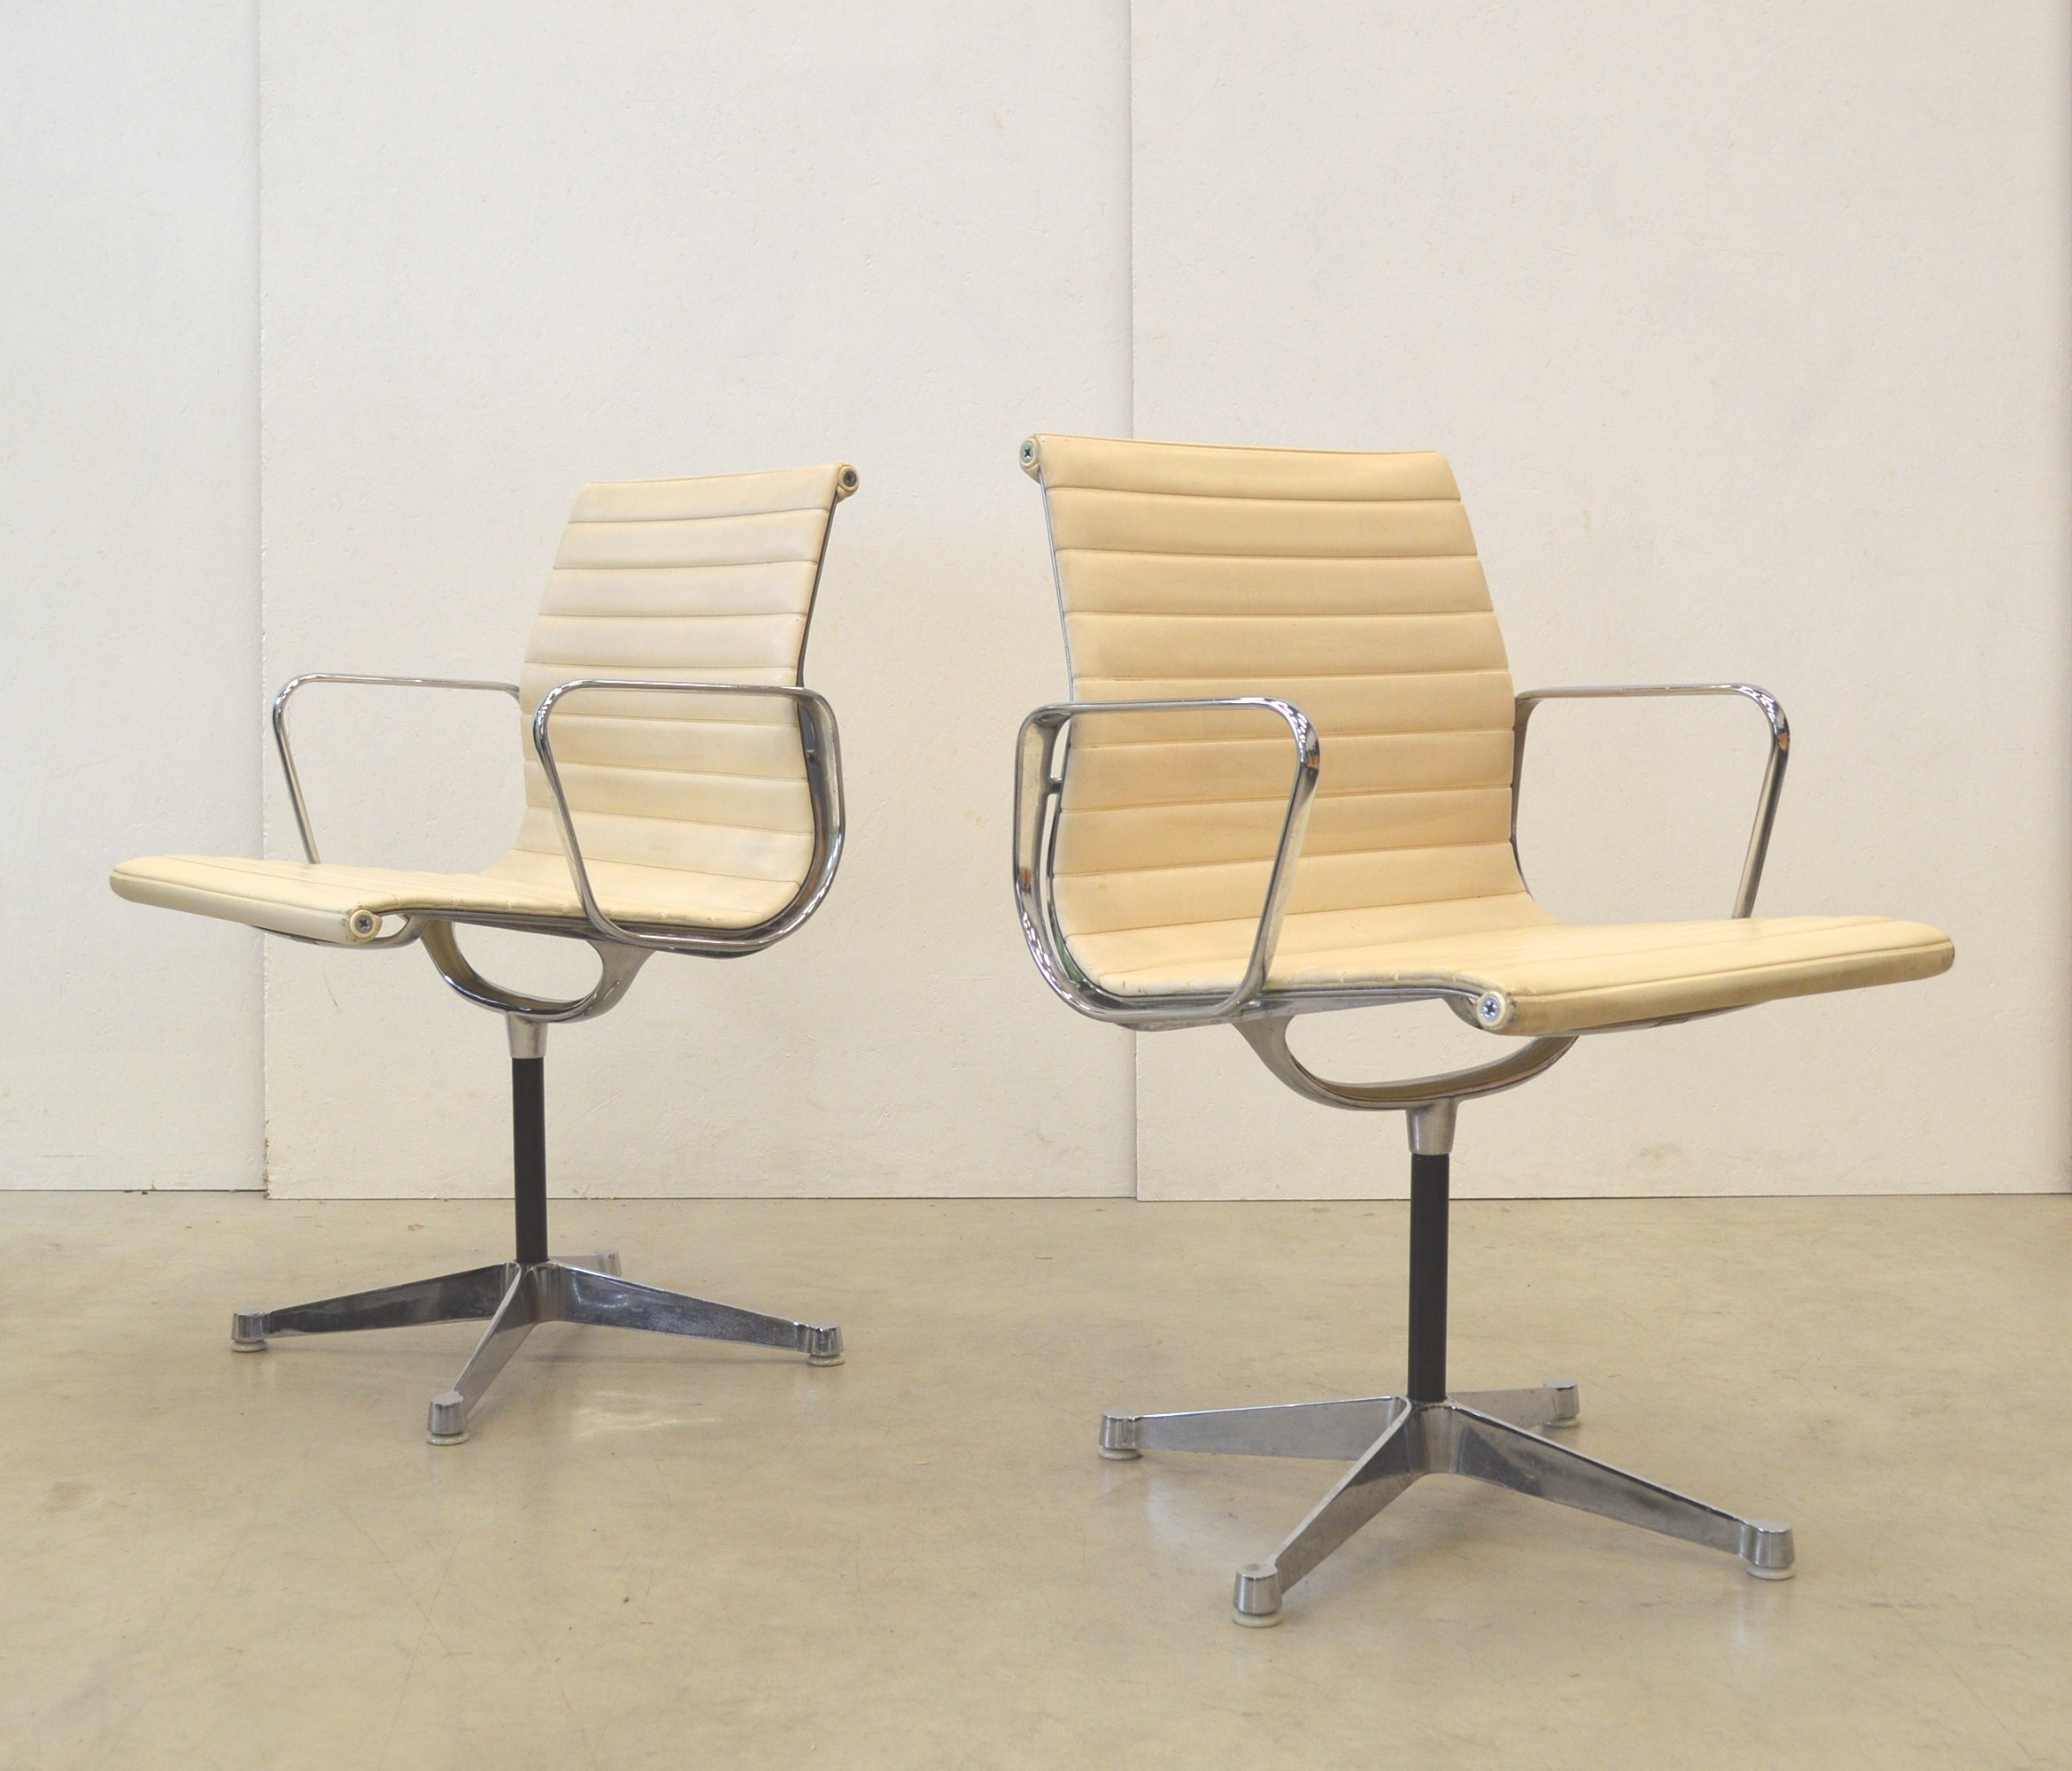 5 x ea108 office chair by charles ray eames for herman miller 1960s - Herman miller chair eames ...